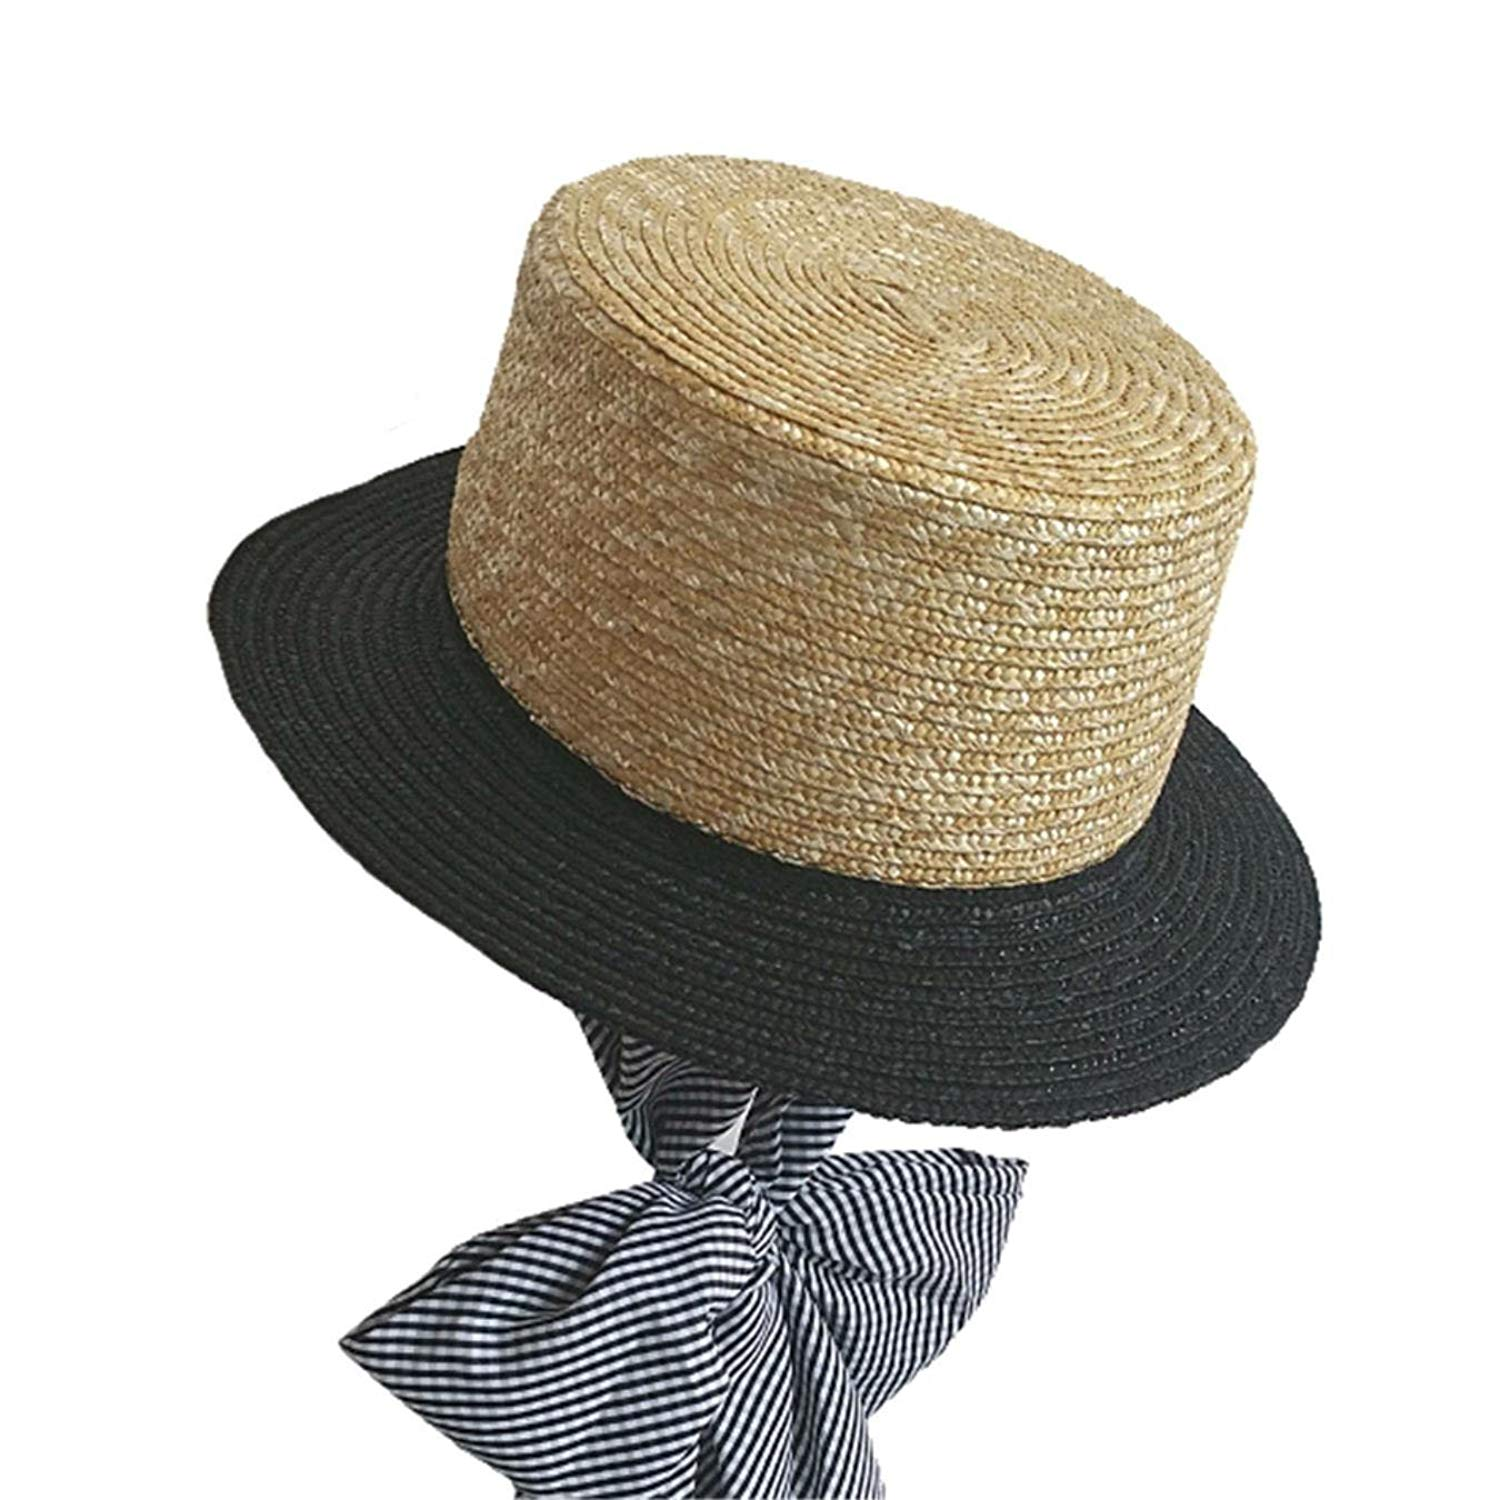 aecfe948a19 Get Quotations · Womens Straw Hats Beige Bowknot Lace up Sun Hat Female  Patchwork Casual Elegant Bucket Caps Hawaii